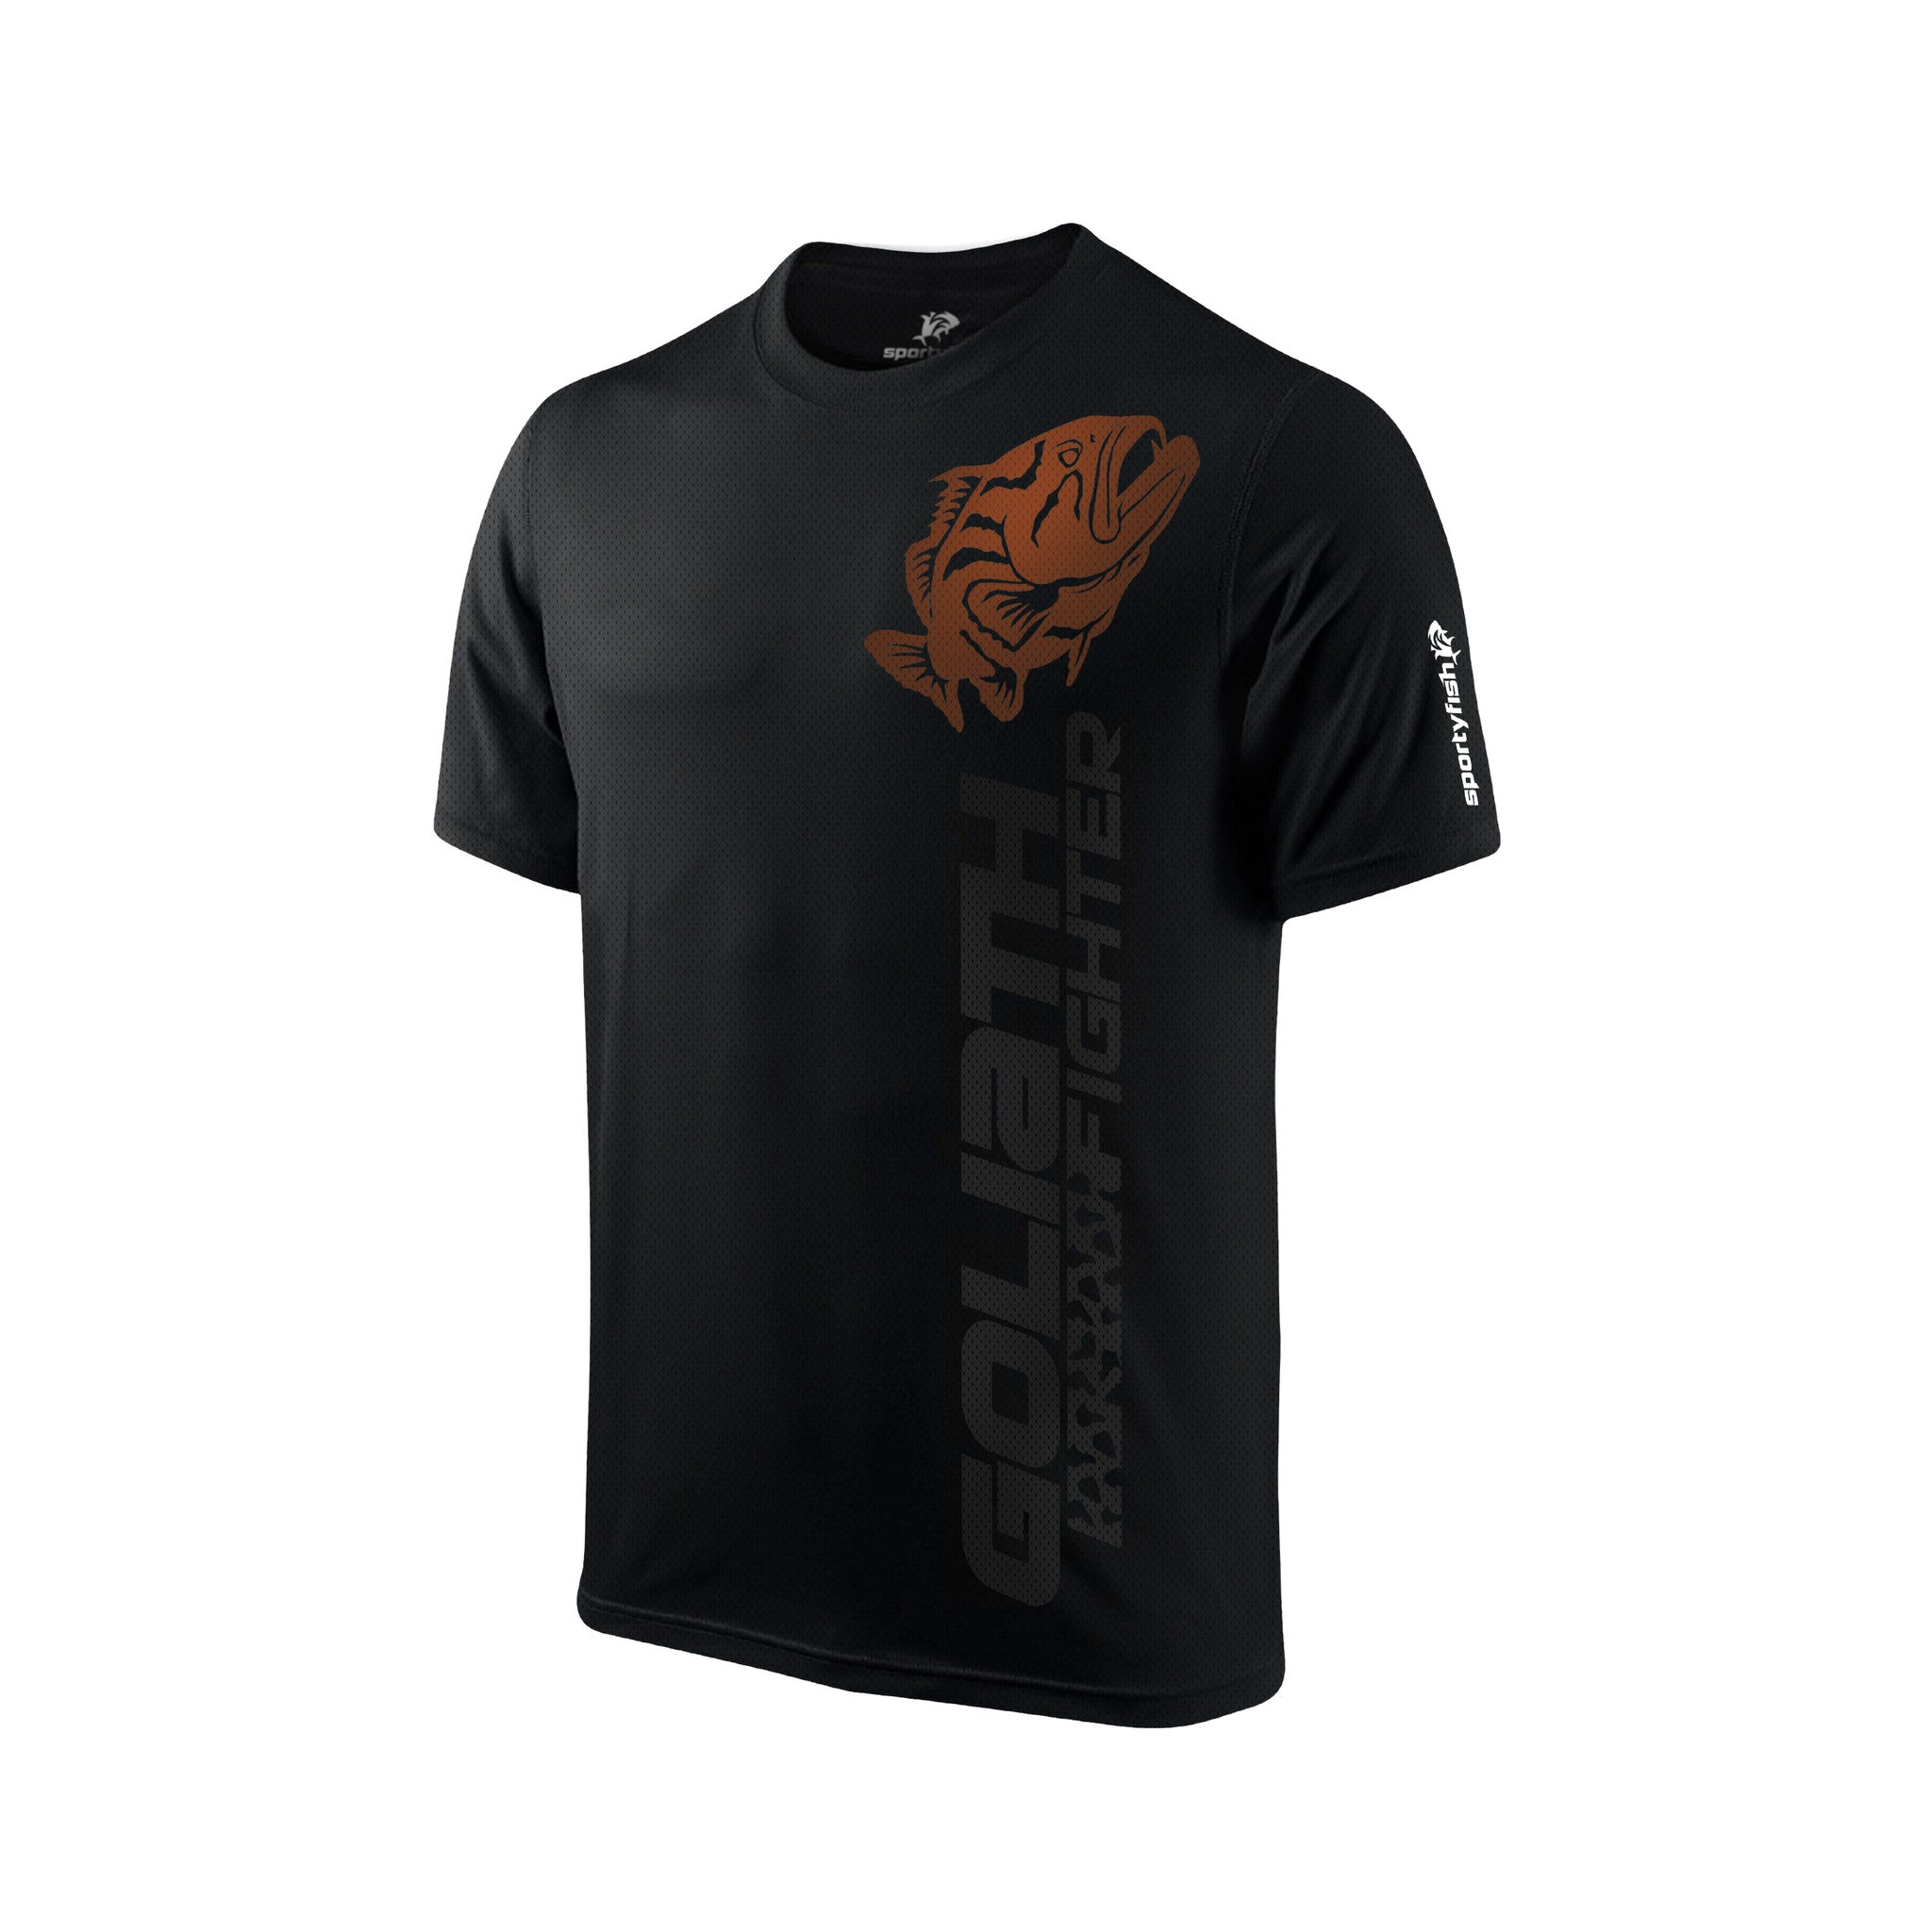 SportyFish Black Series T-shirt(front view): Grouper